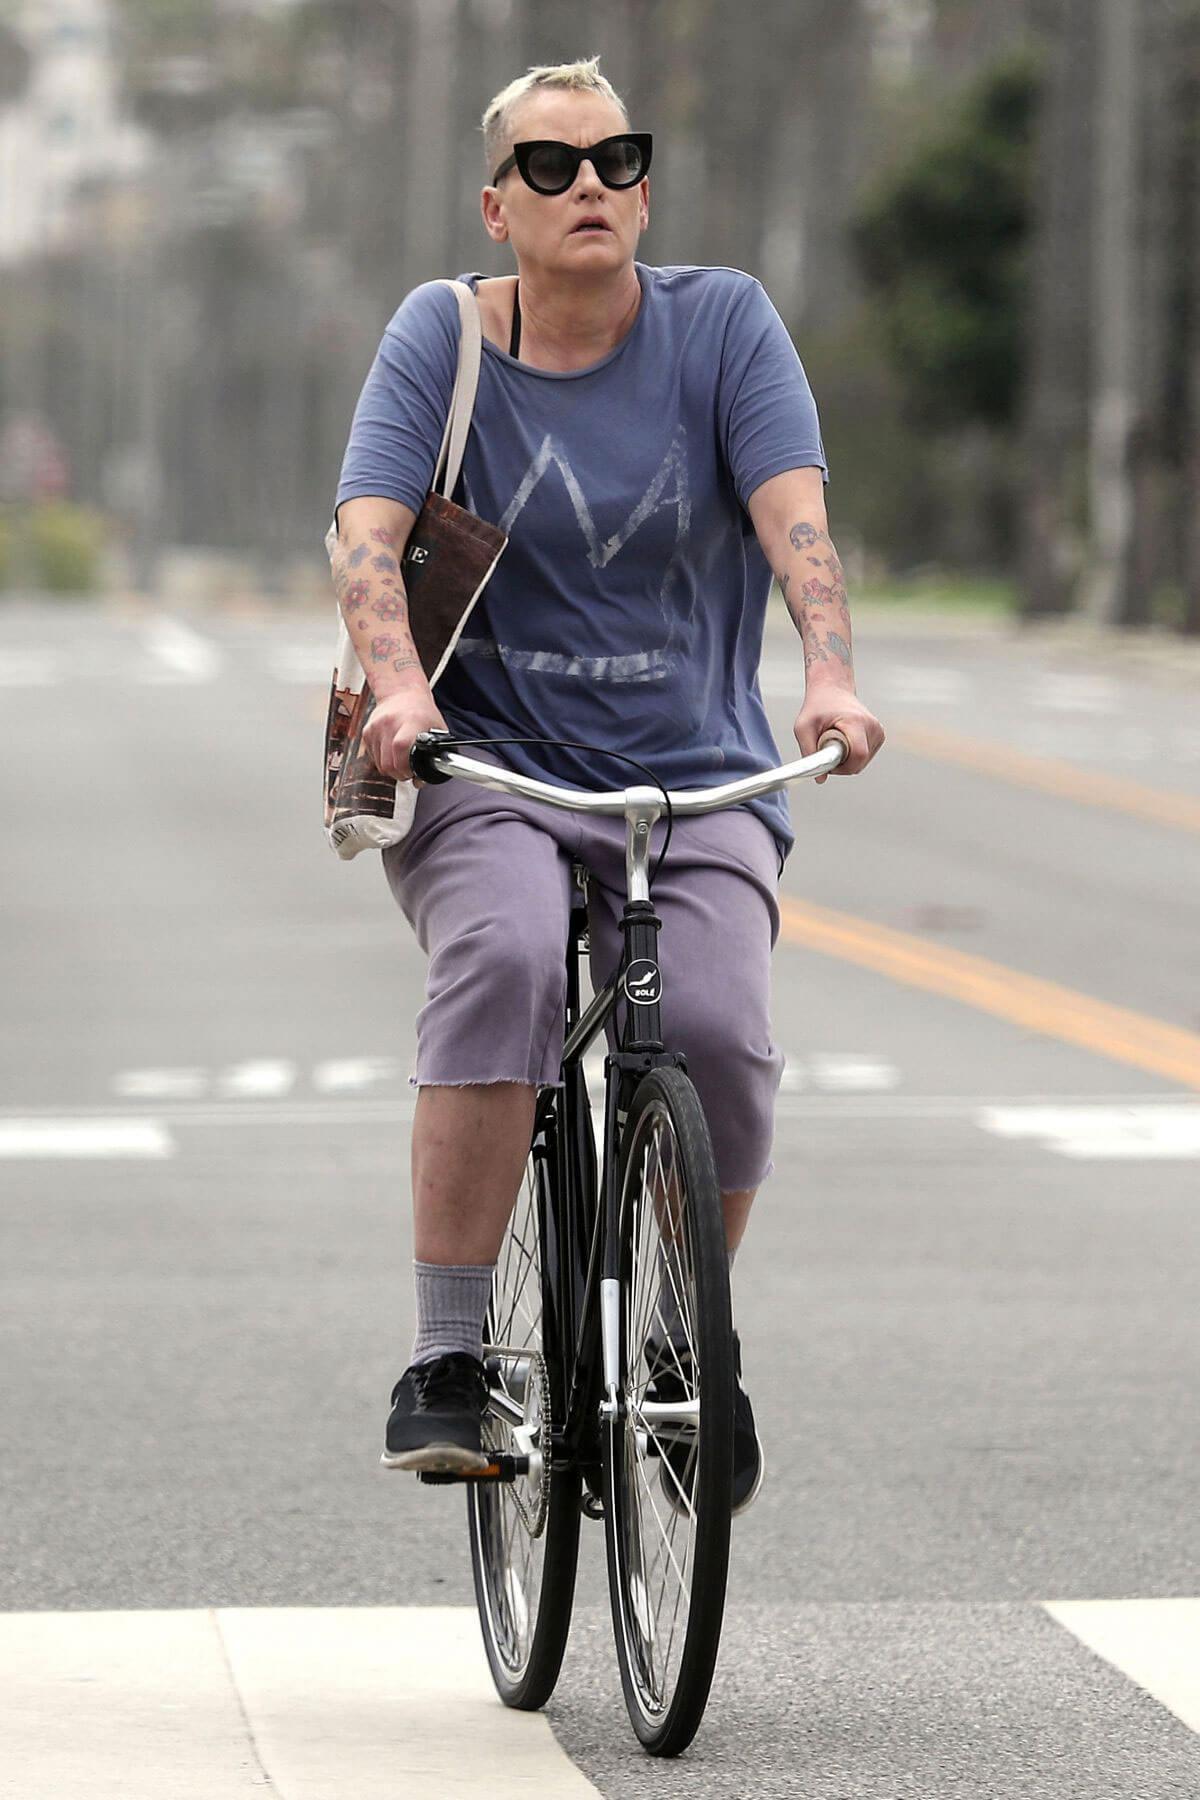 Lori Petty Out for a Bike Ride in Santa Monica 81031 ...